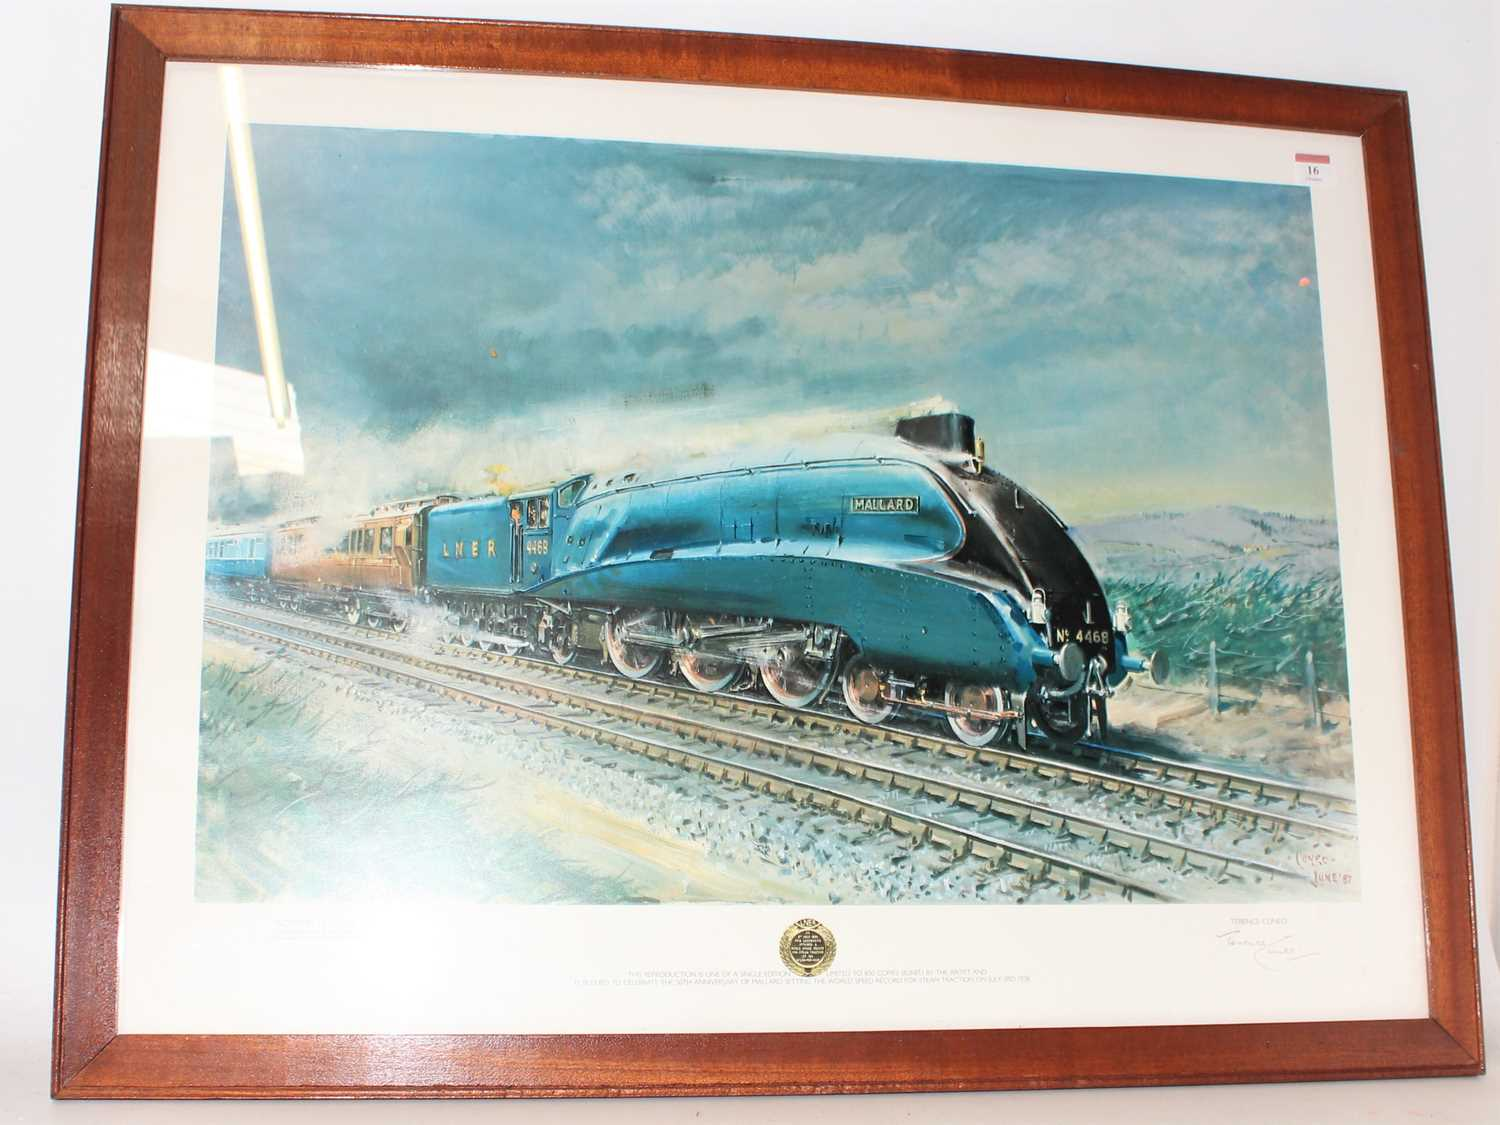 Framed and Glazed landscape print of Mallard on Stoke Bank to commemorate the 50th anniversary of - Image 2 of 2